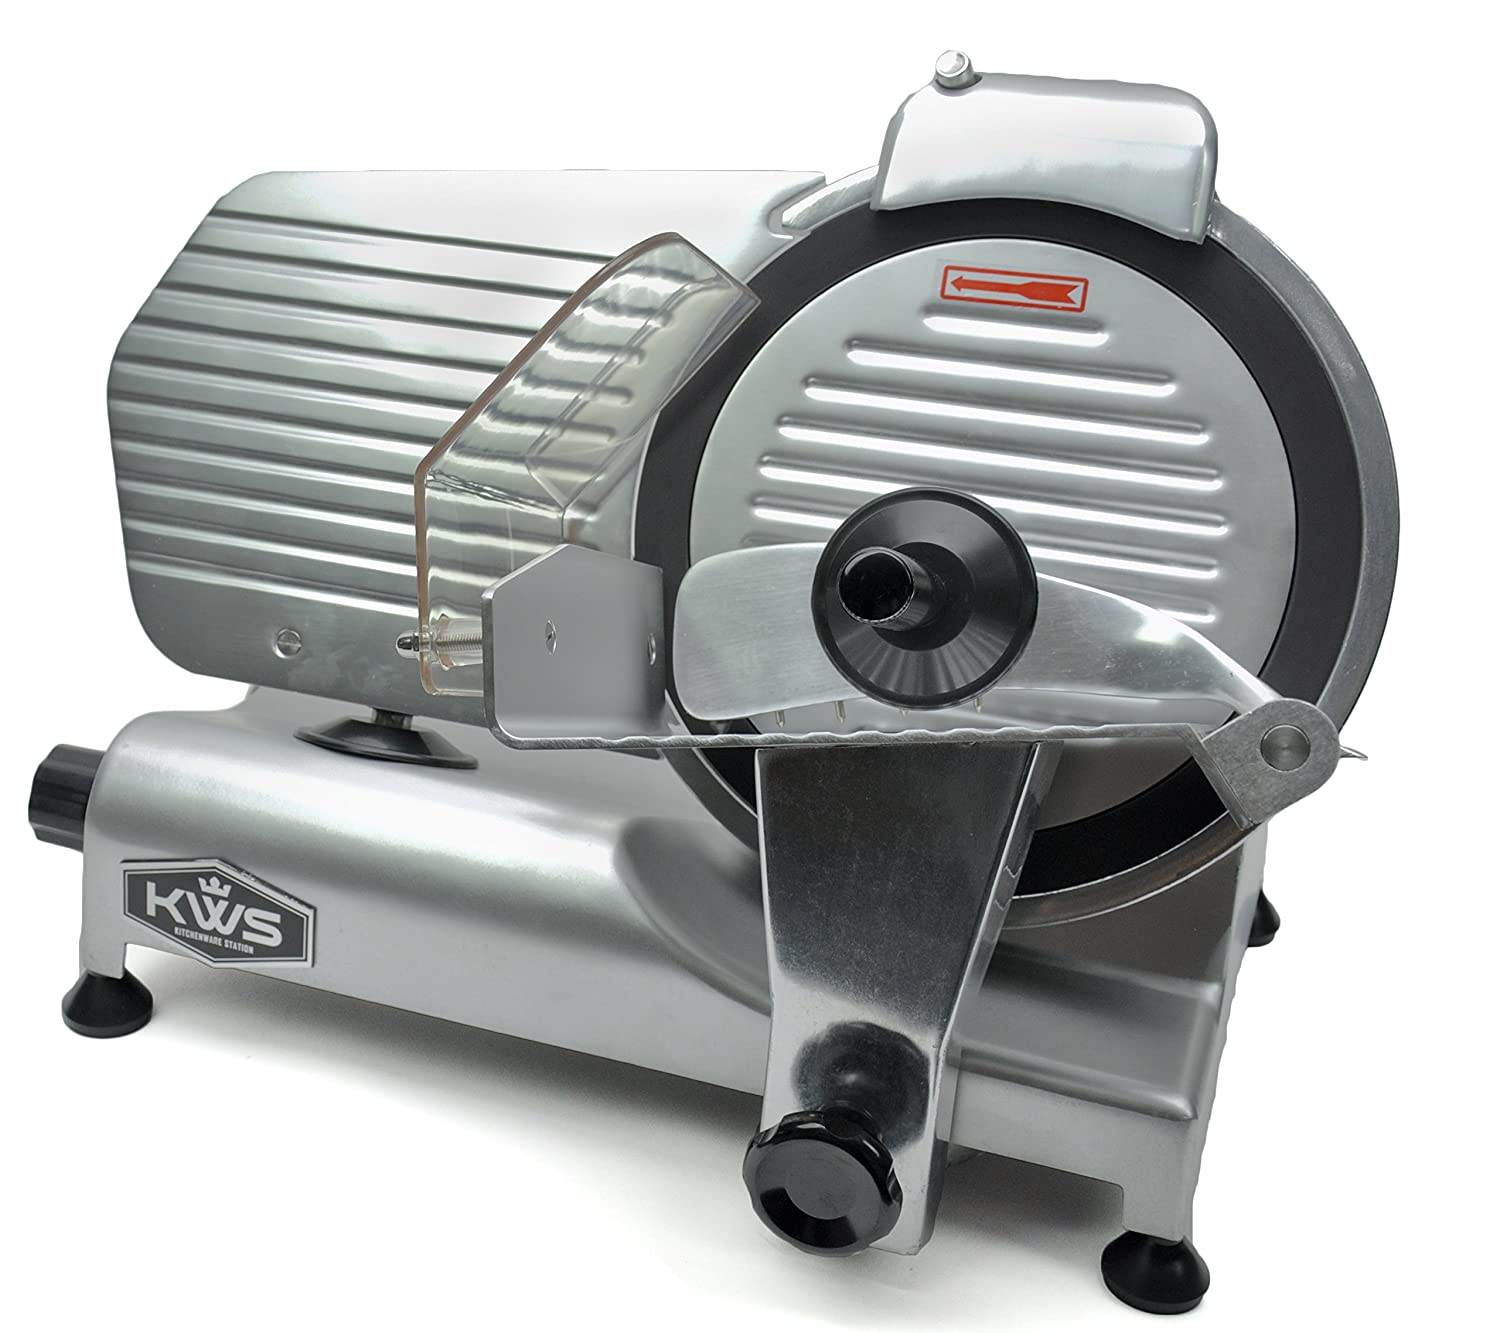 Best Meat Slicer Reviews 2019: Top 5+ Recommended 4 #cookymom